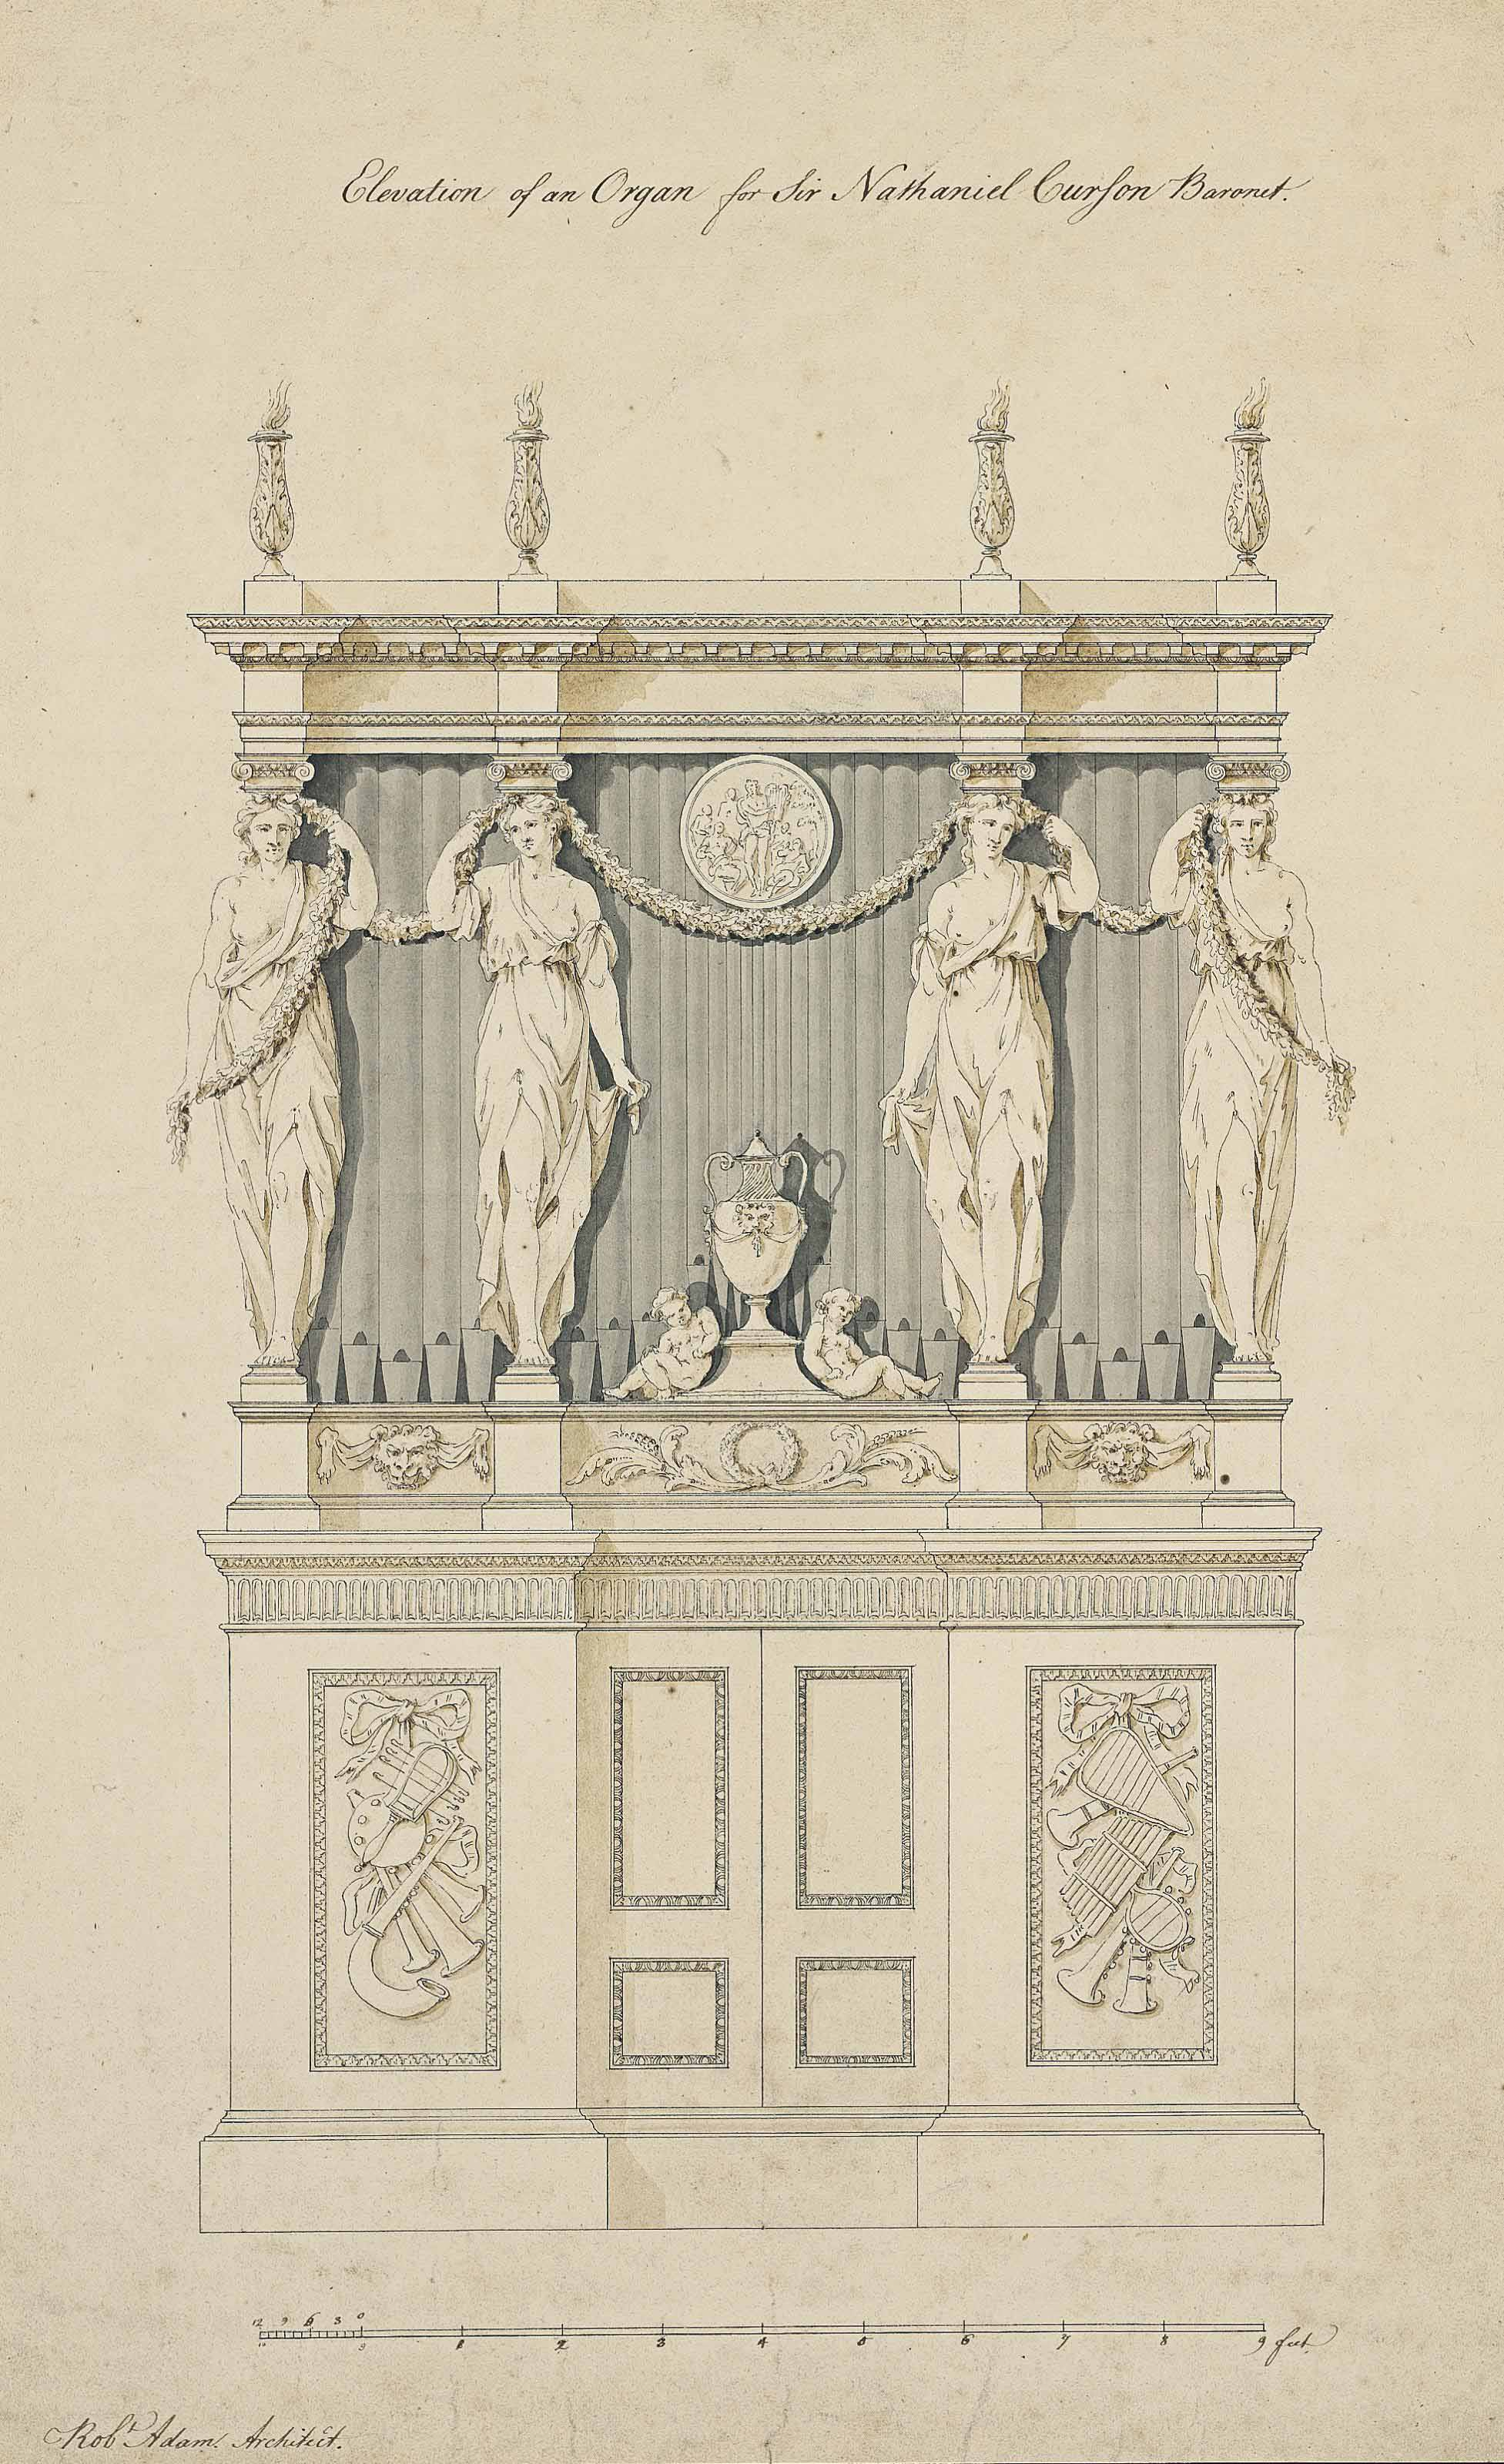 Elevation of an organ for Sir Nathaniel Curzon, Bt.